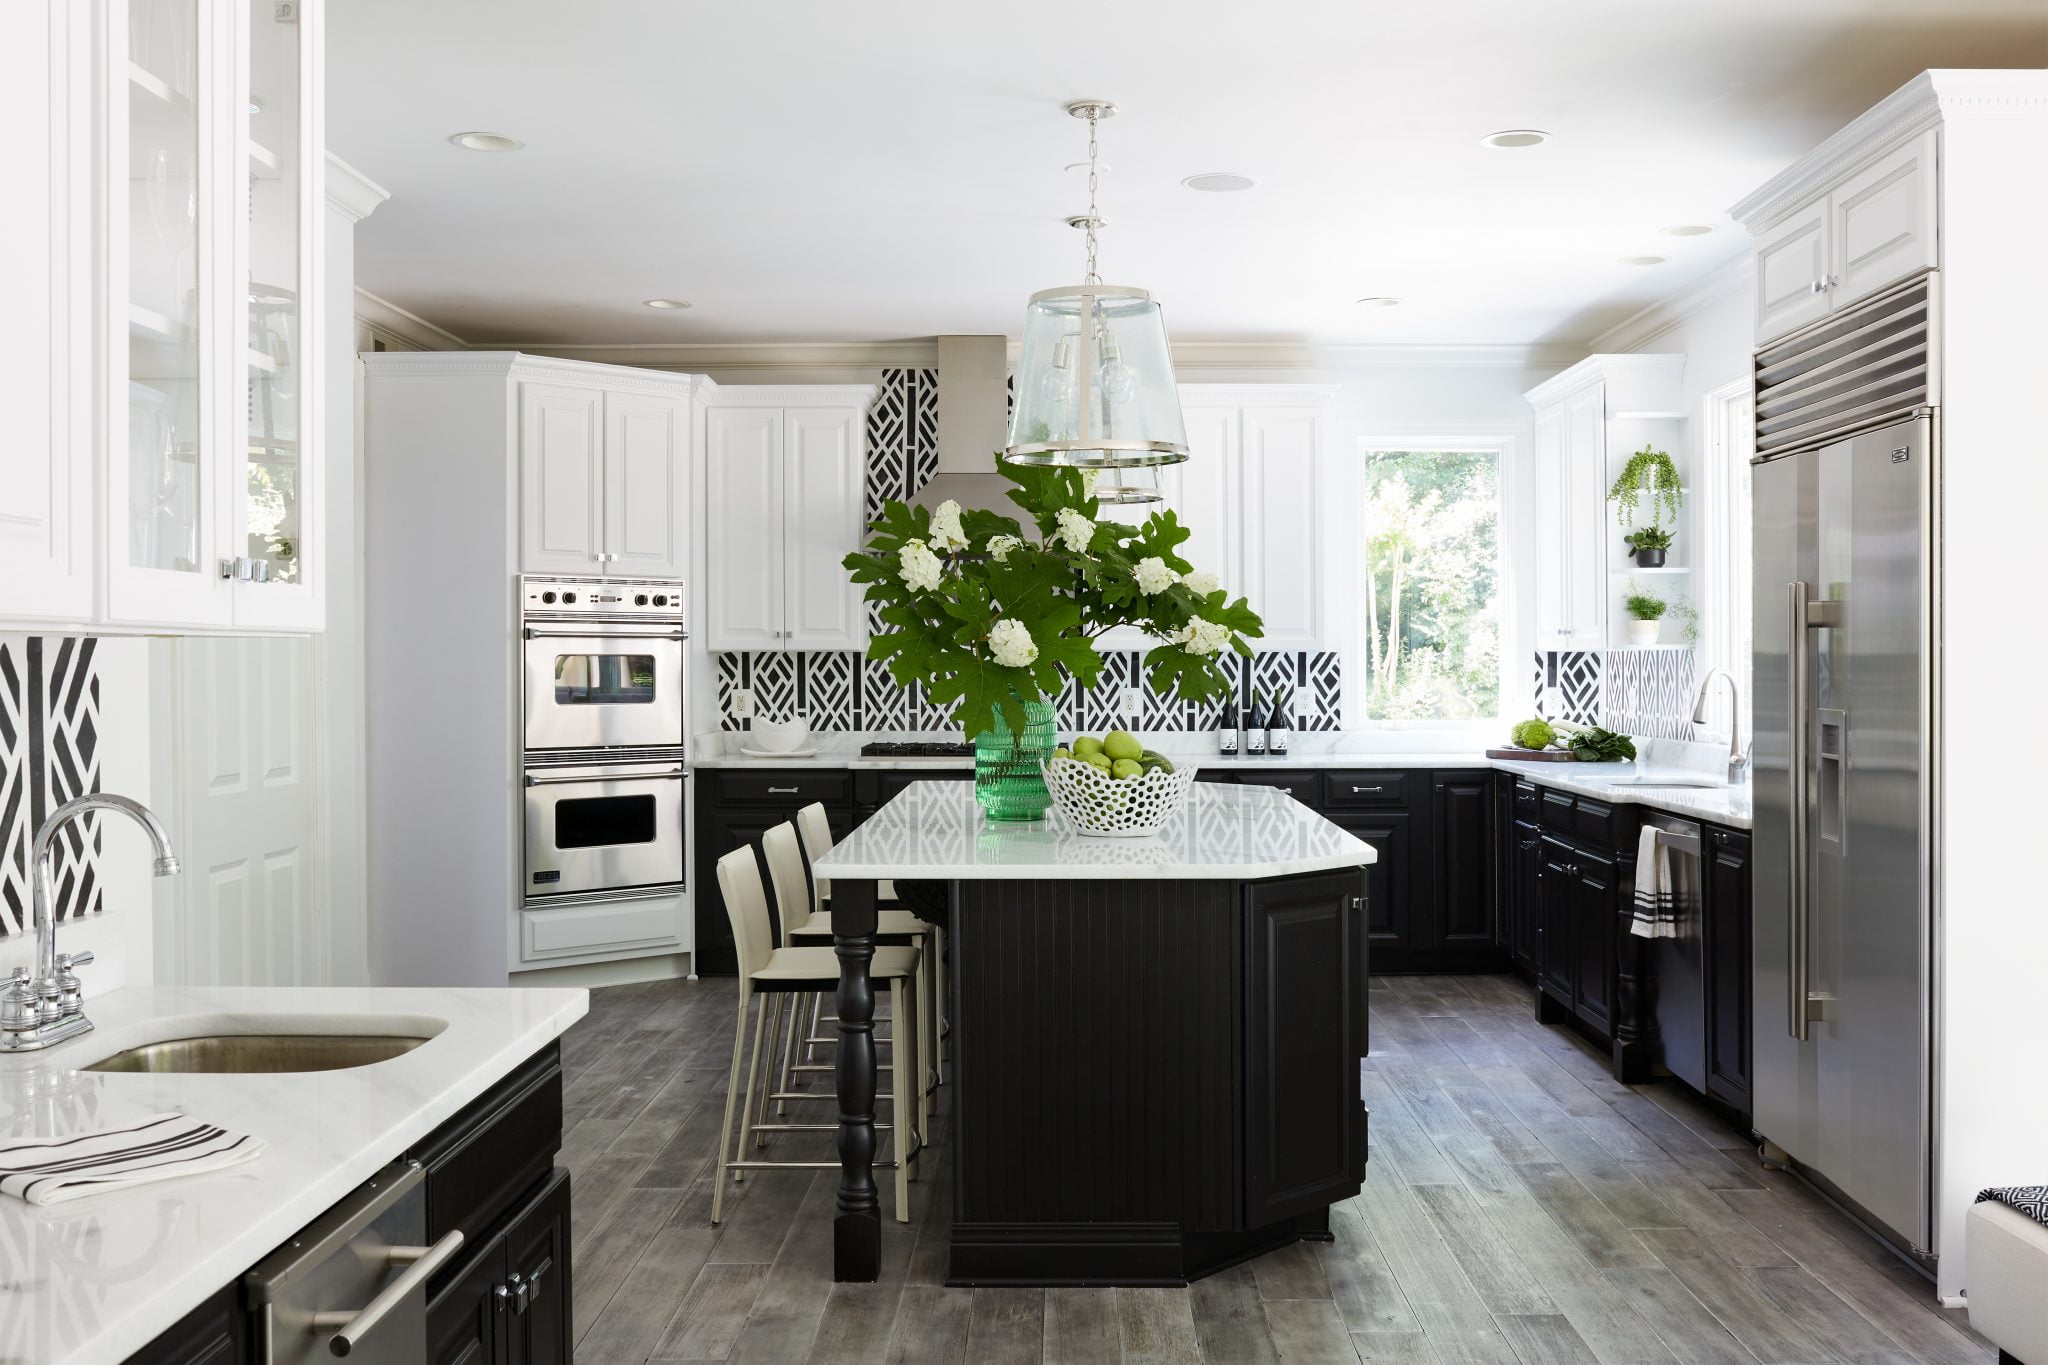 The designer lacquered the original cabinets black and white in the kitchen.